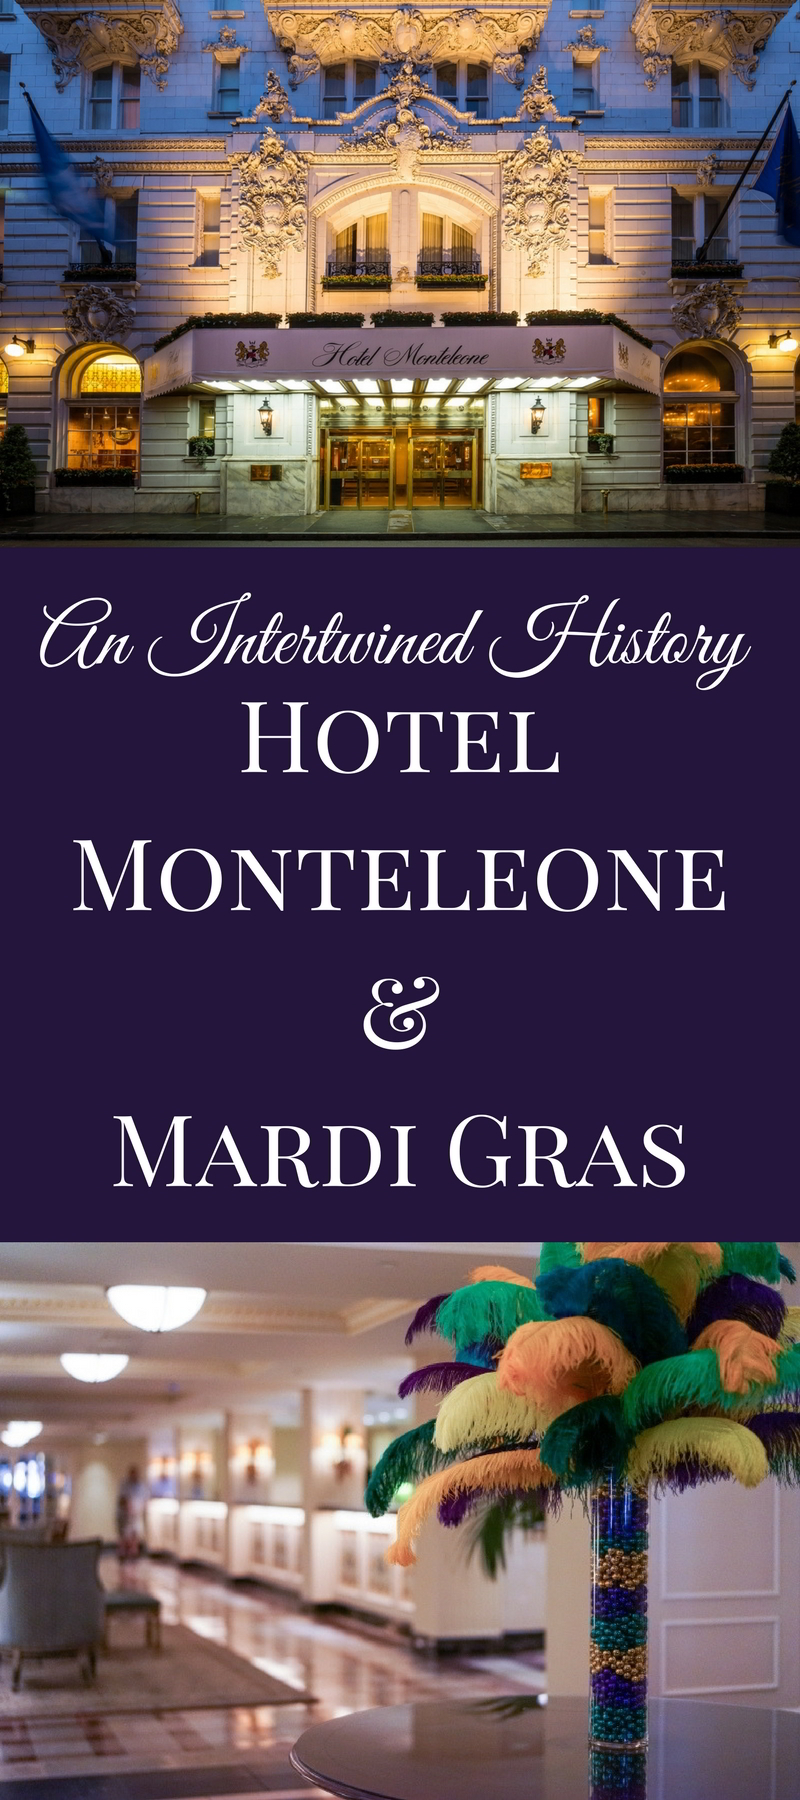 What do the French Quarter and a Sicilian immigrant have in common? Learn more about the deeply intertwined history of Hotel Monteleone and Mardi Gras.